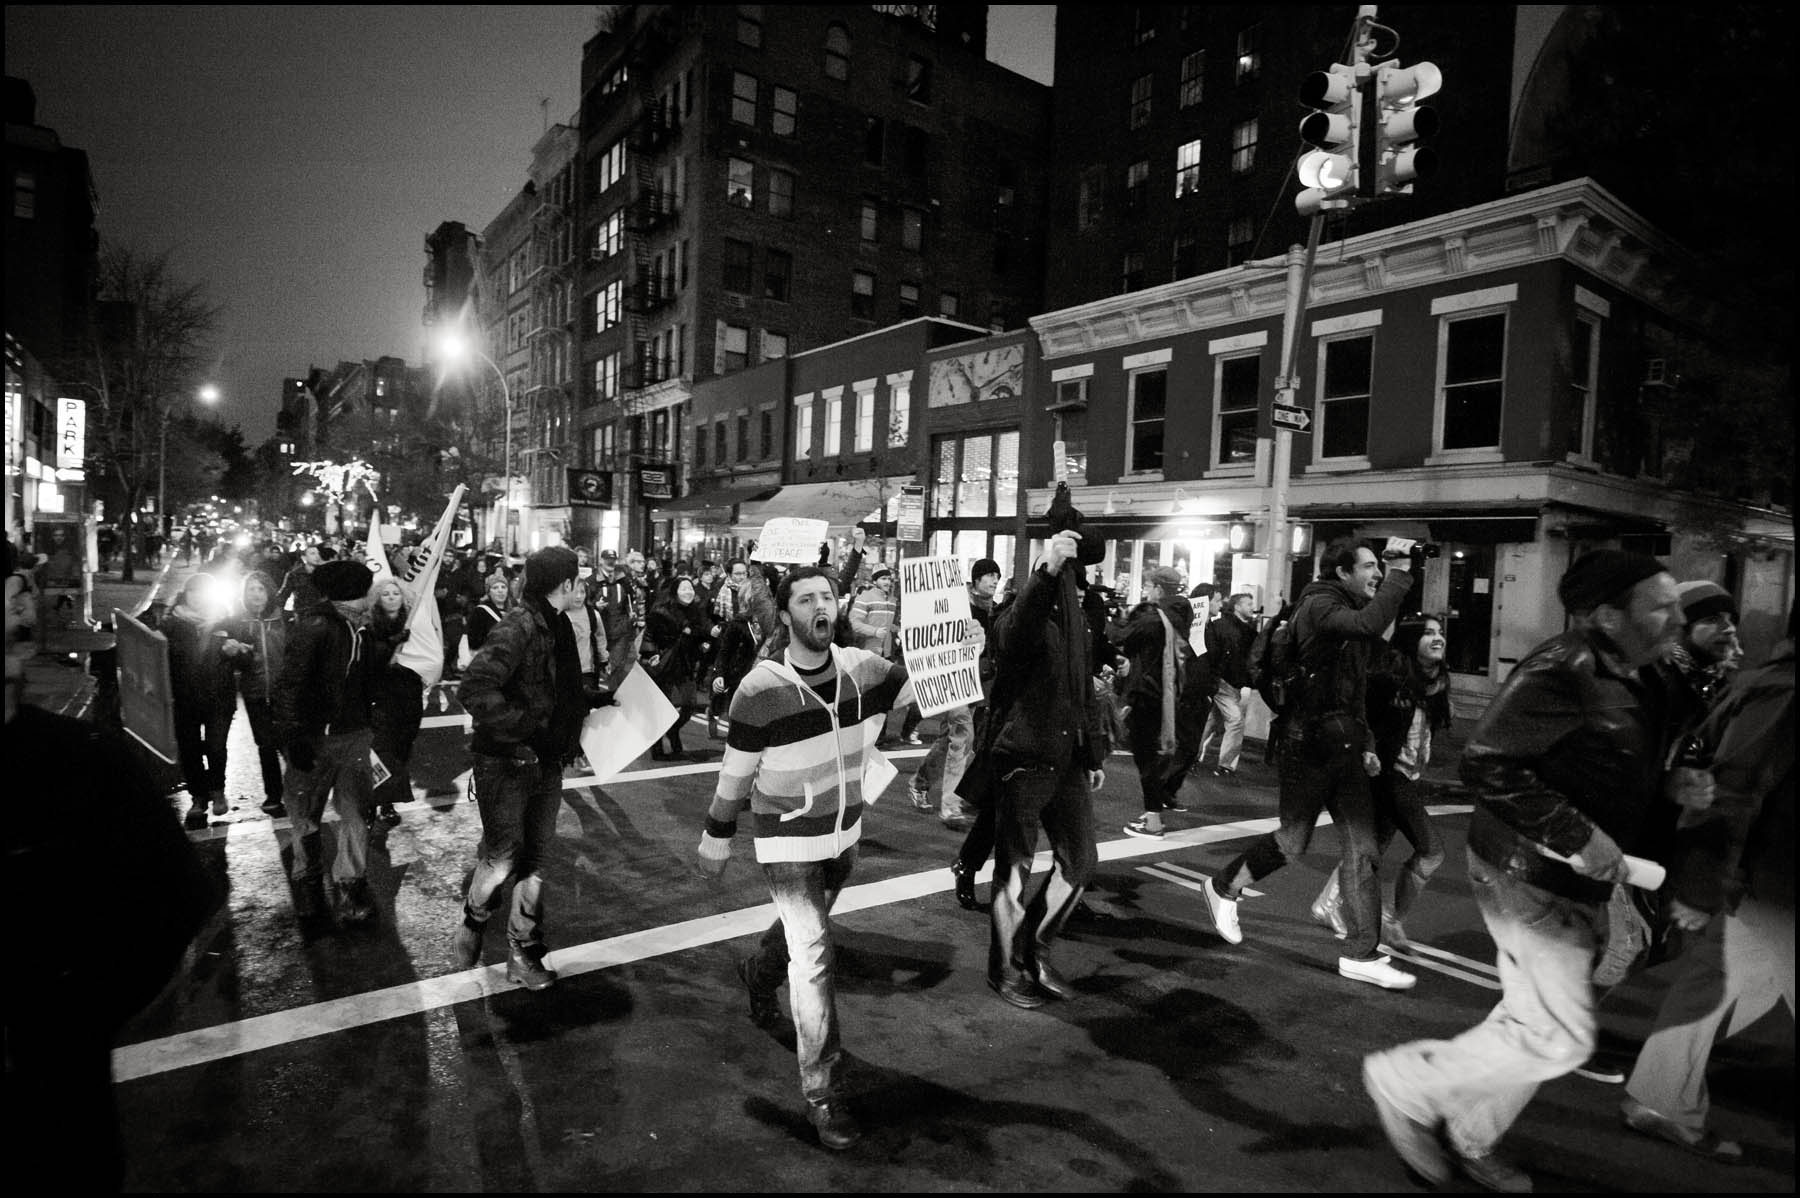 Protesters run unchecked through the streets while marching from Union Square to Foley Square. The Police ceded the streets to the protesters when they couldn't contain the crowd of about 2,000 protesters.